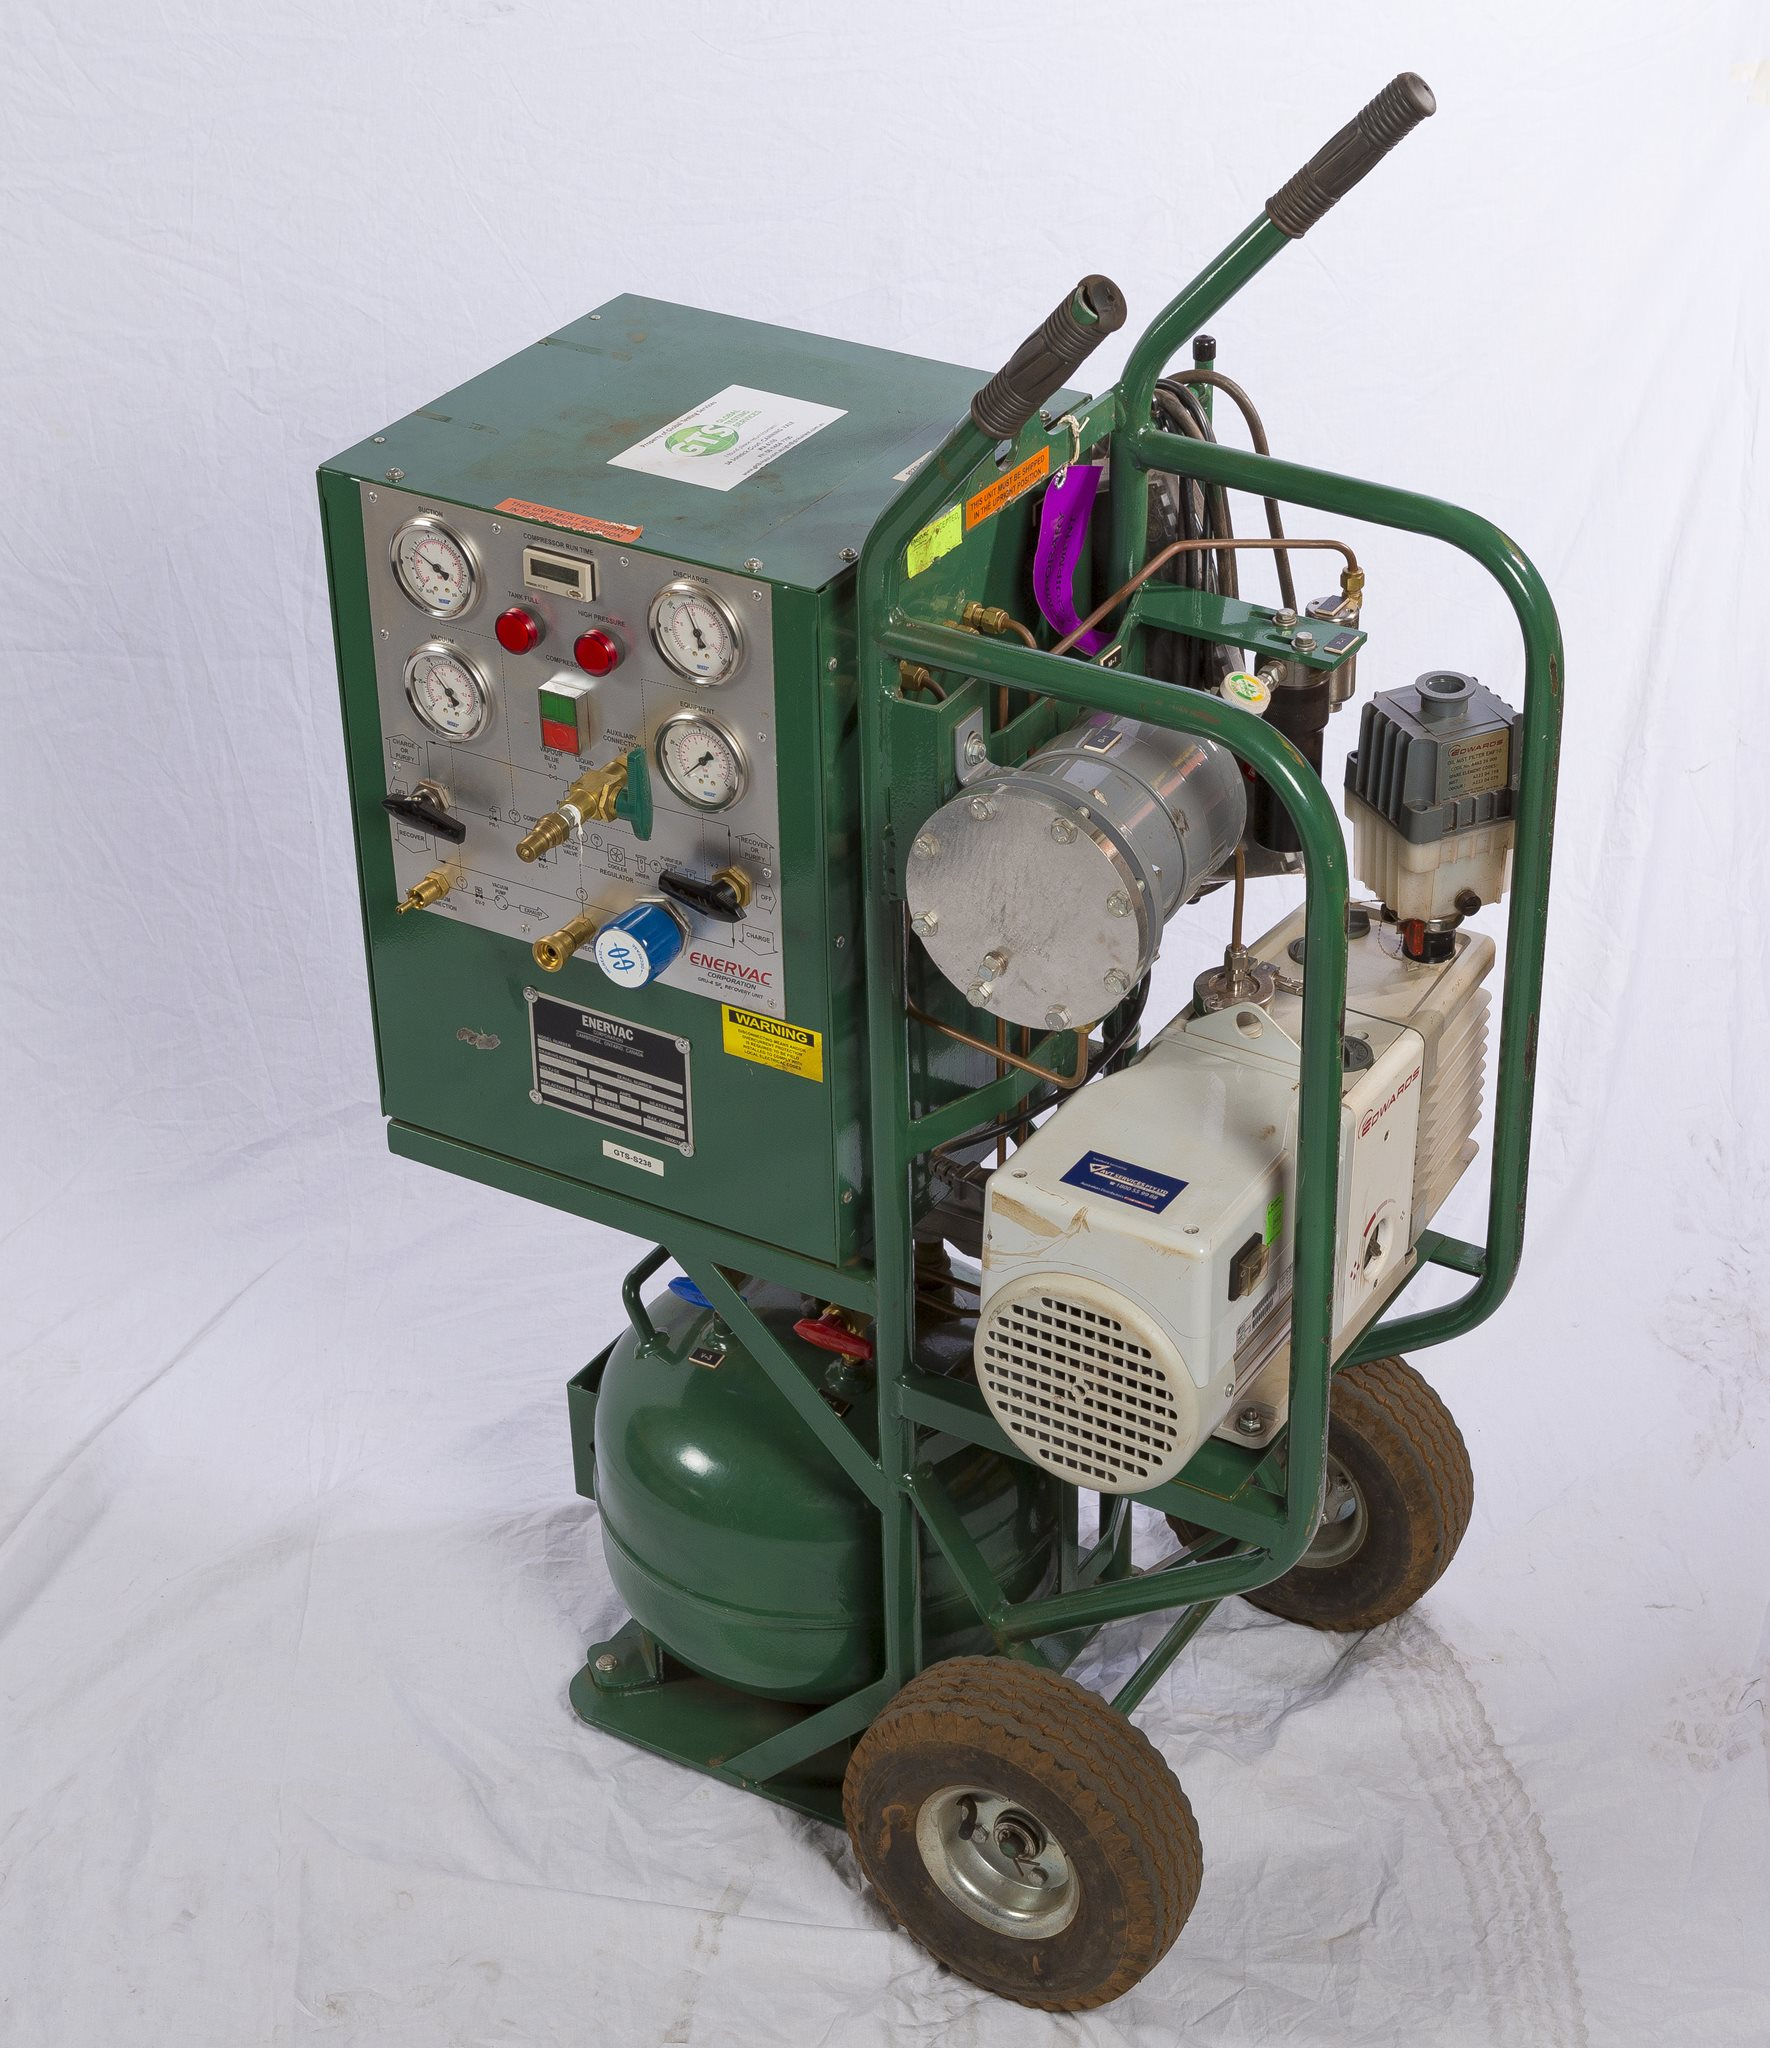 SF6 Gas Recovery Unit - Enervac Group GRU-4